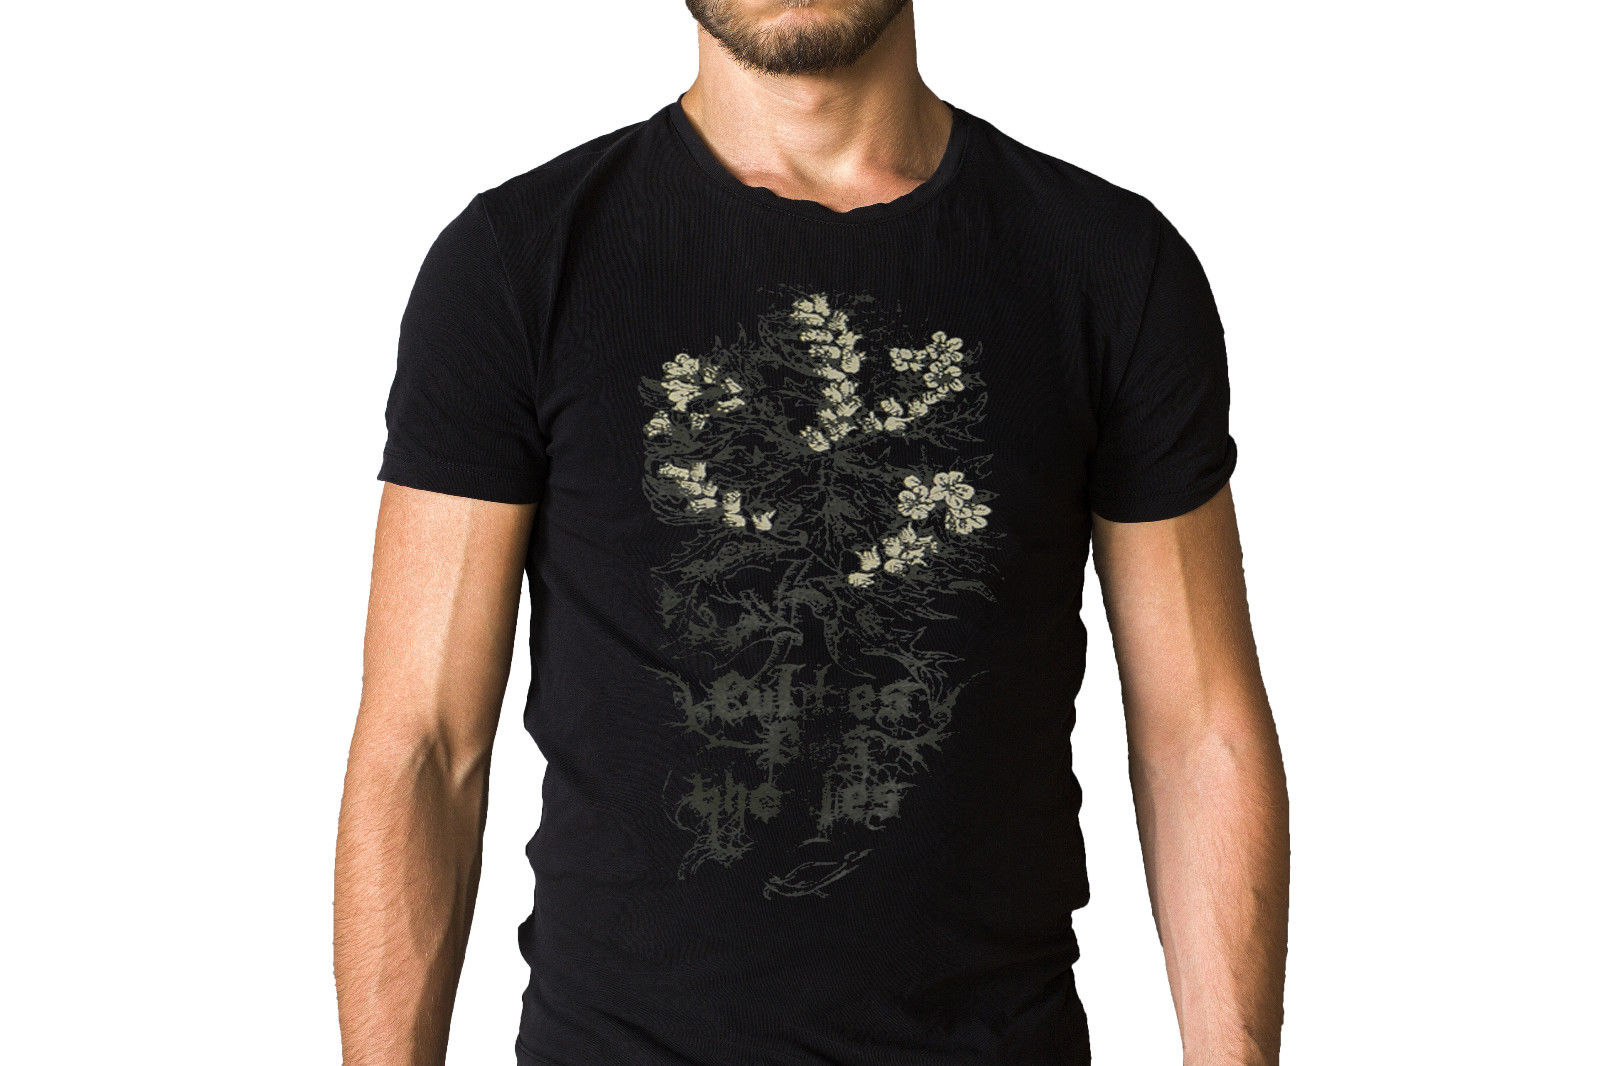 Cultes Des Ghoules Henbane 2013 Album Cover T-Shirt Short Sleeve T Shirt Funny Print Top Tee New Summer Style Plus Size